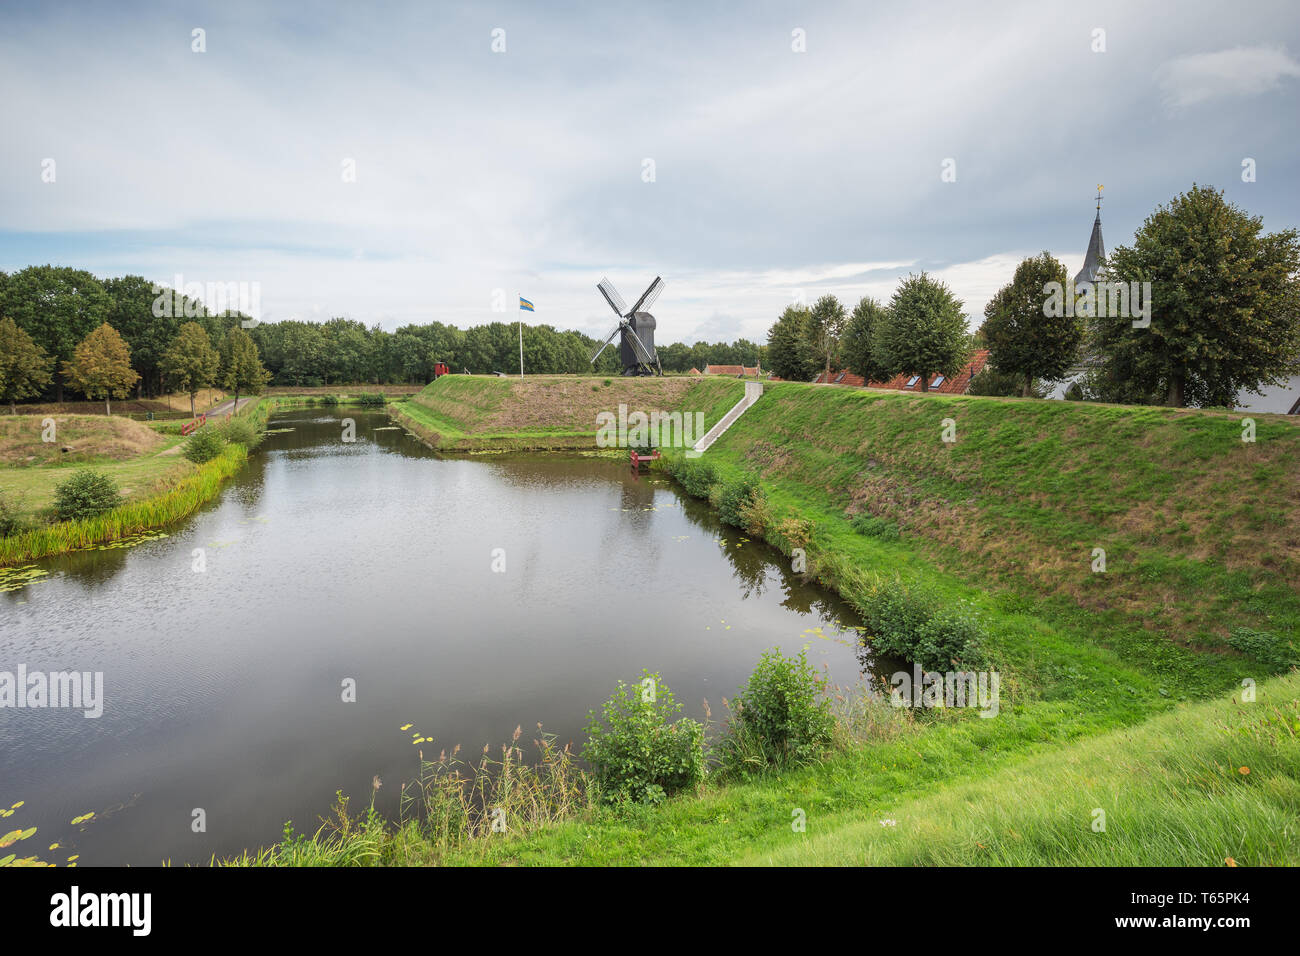 Overlooking the moat around Bourtange with the windmill in the background - Stock Image